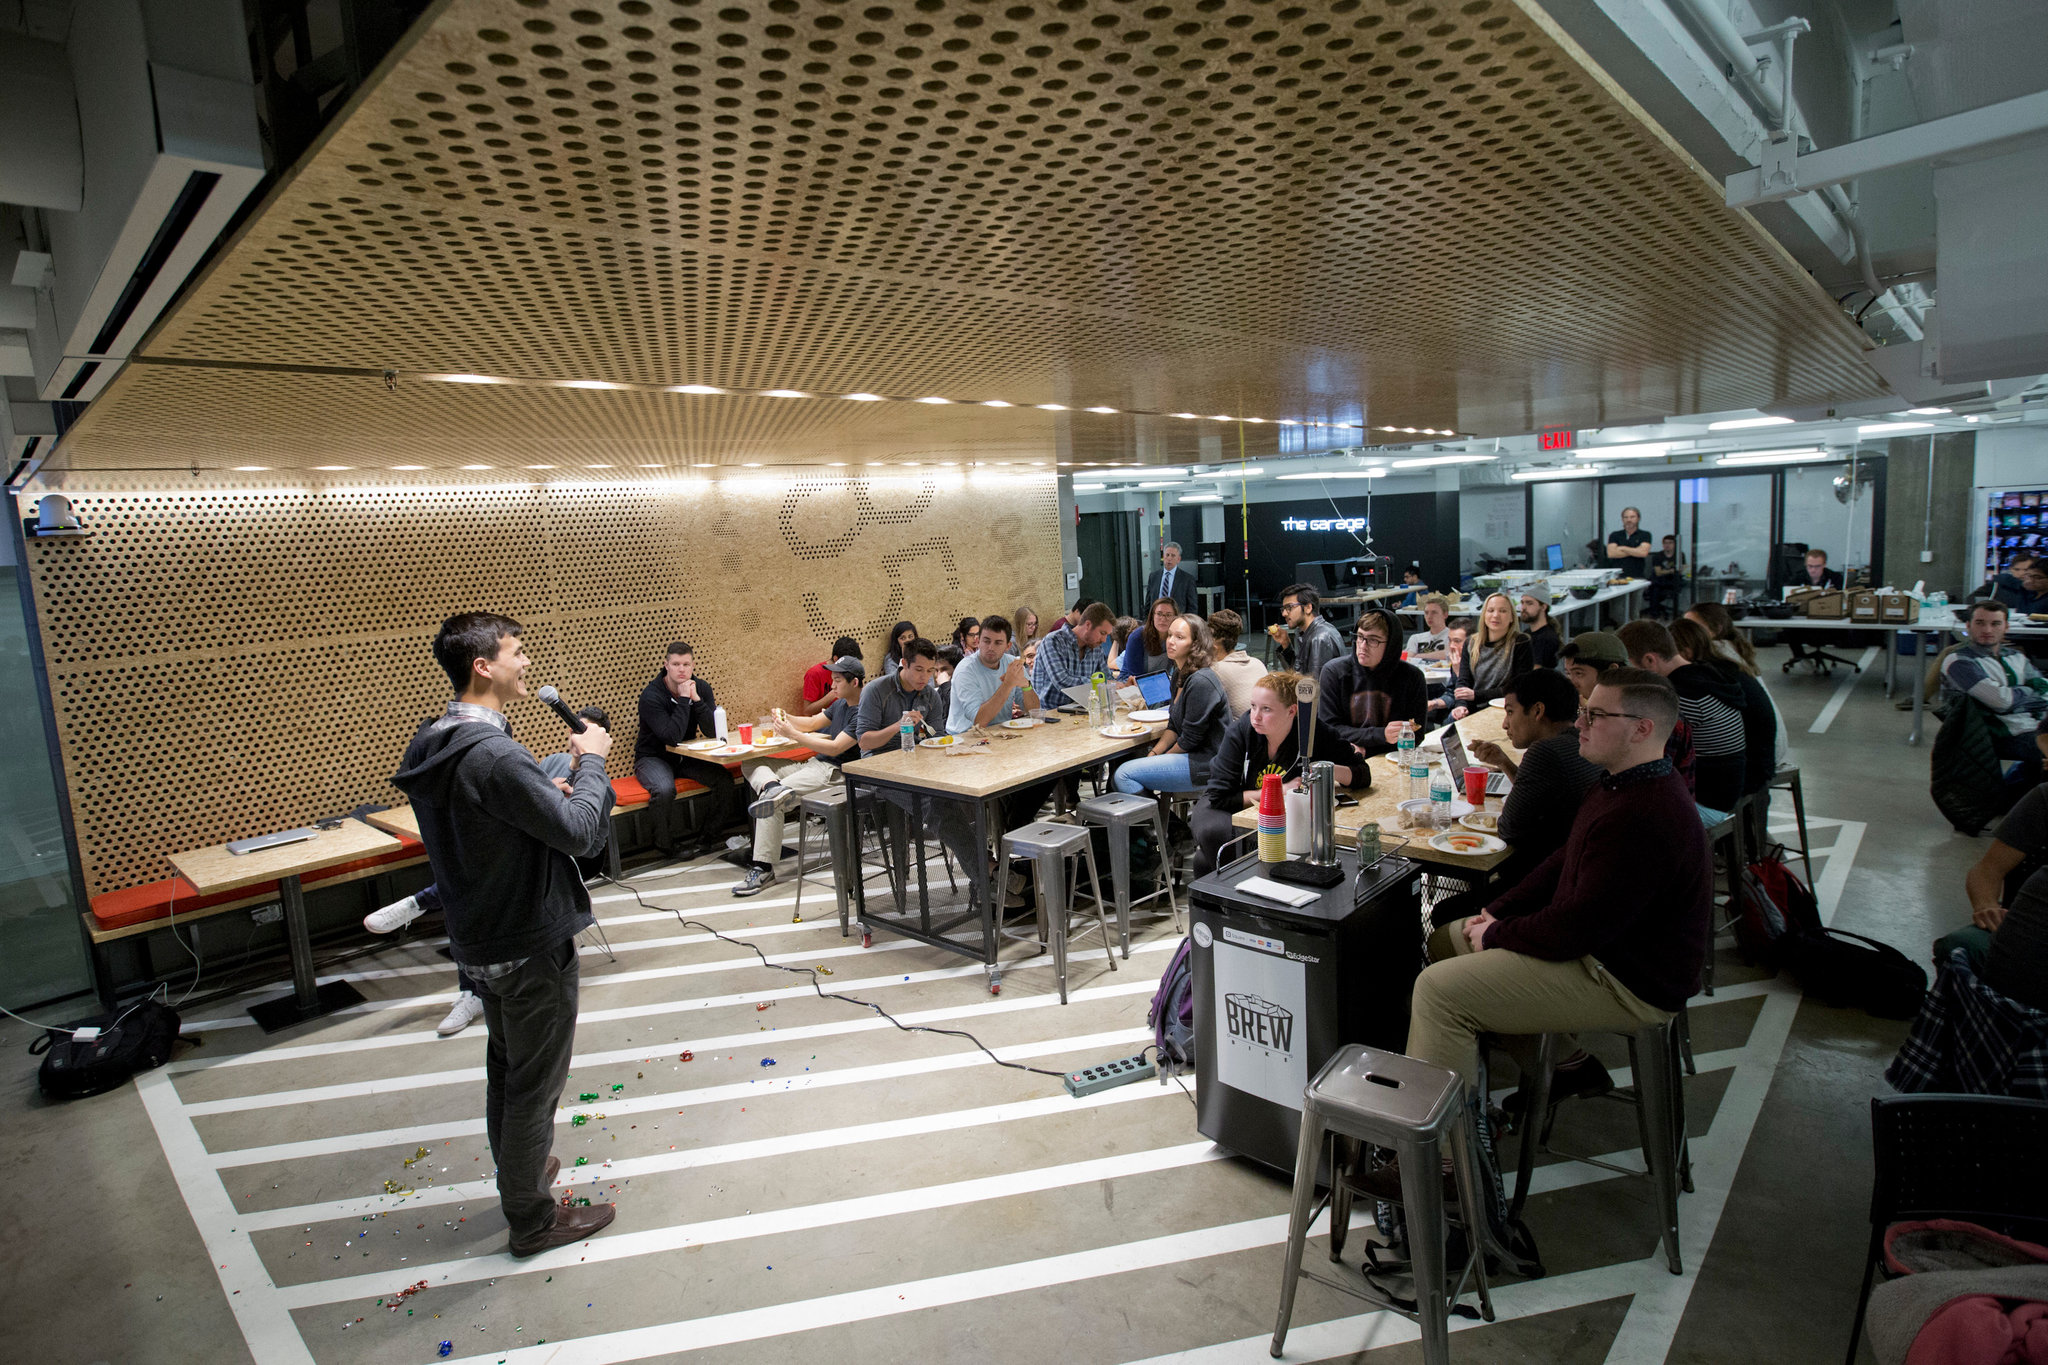 Griffen Kelly, a founder of Trac and a Northwestern alumnus, speaks to students during the weekly dinner at the Garage, which was built in one. Note the parking lines on the floor.CreditNathan Weber for The New York Times